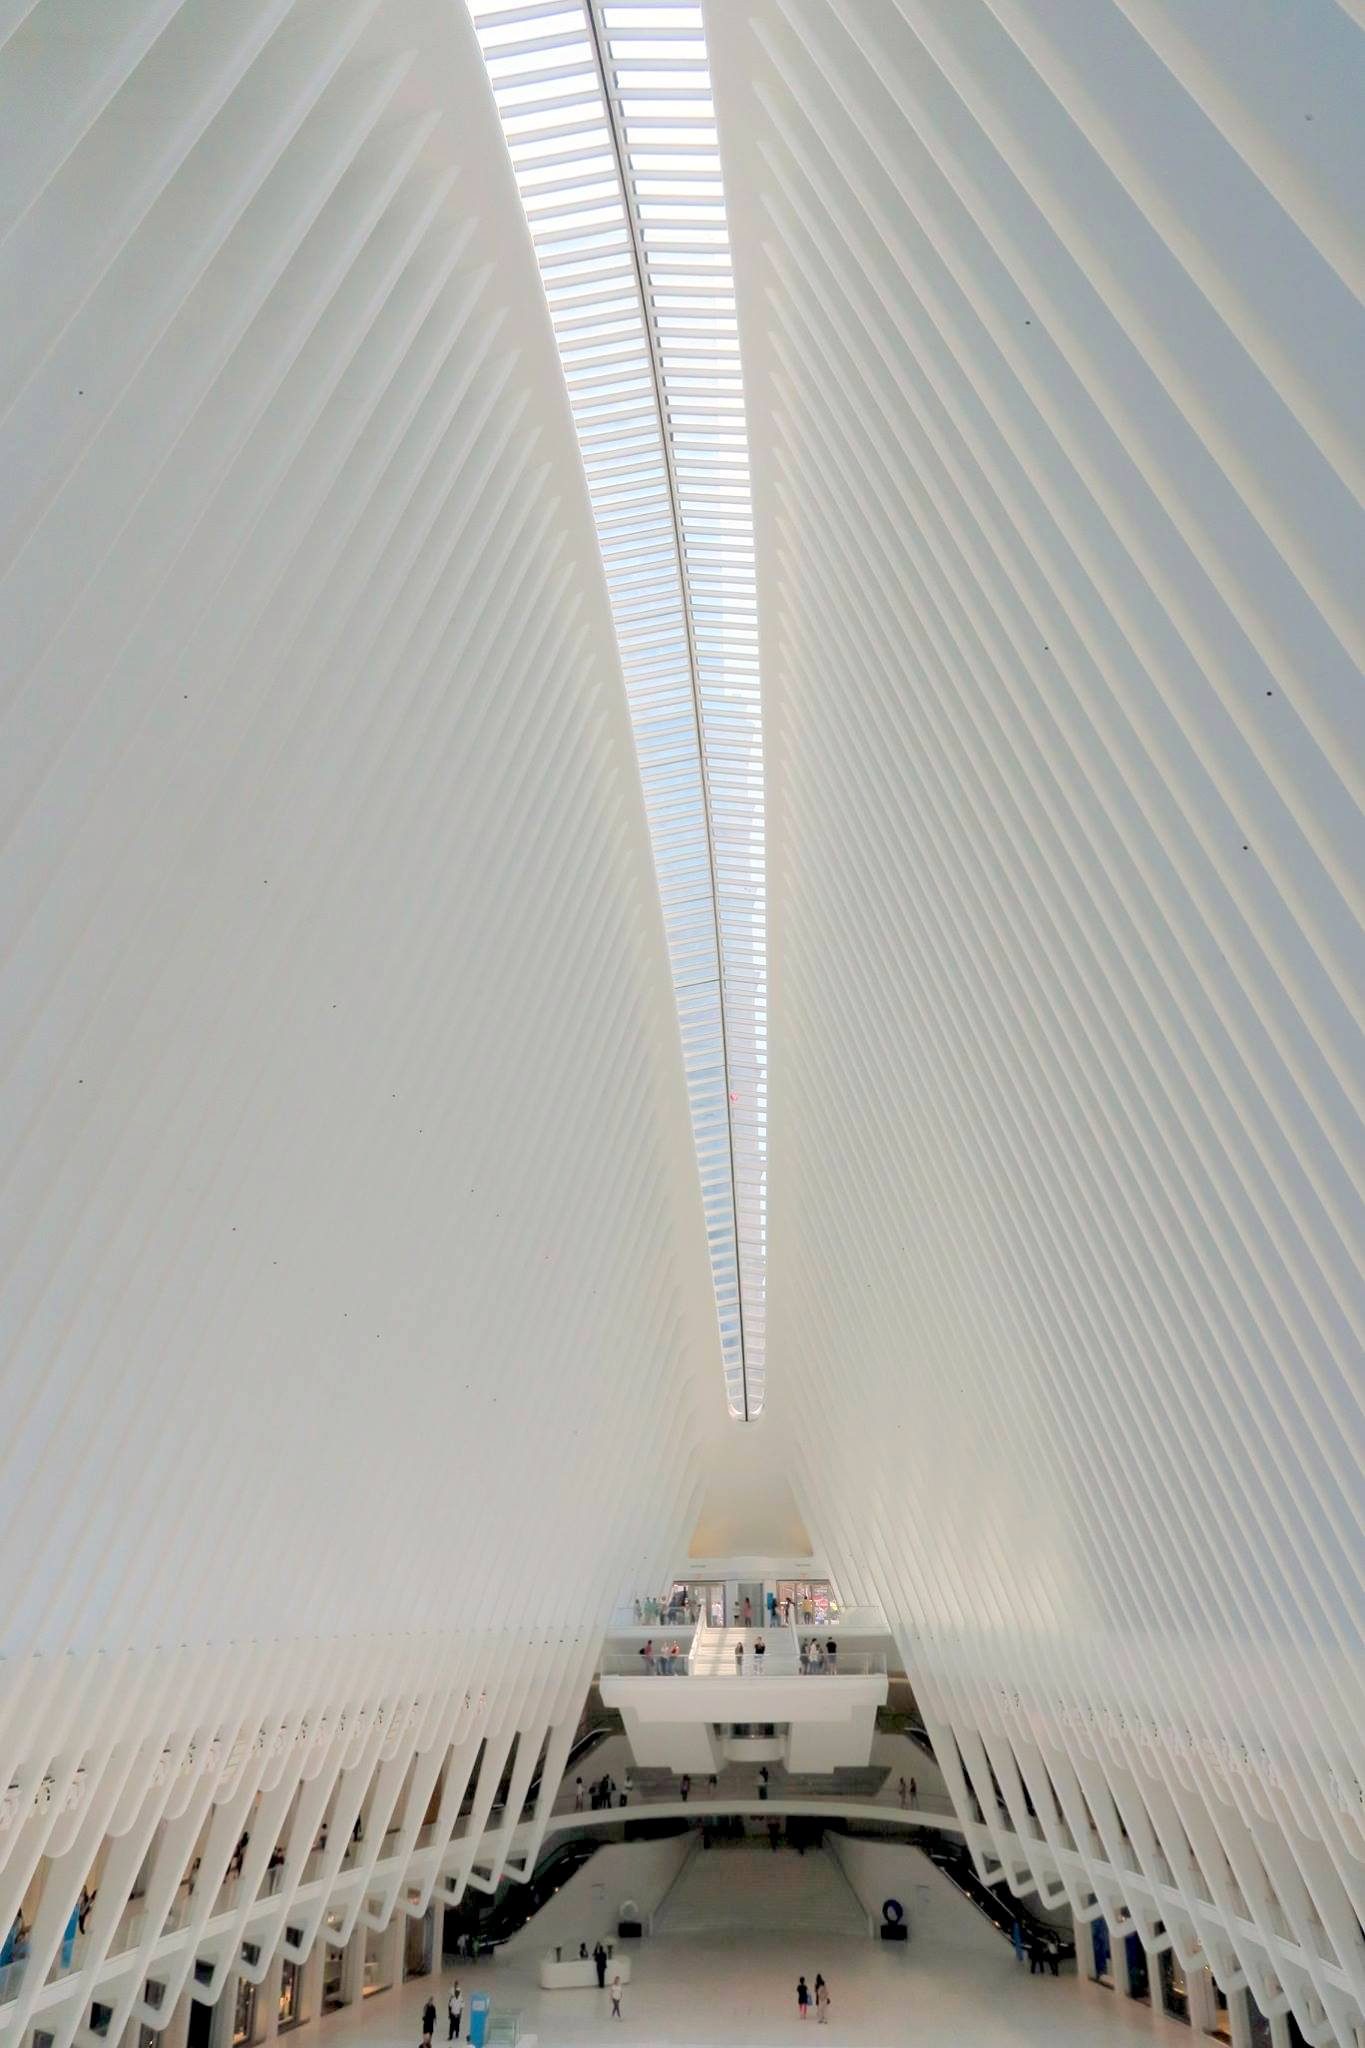 Don't forget the Oculus near One World Trade Center